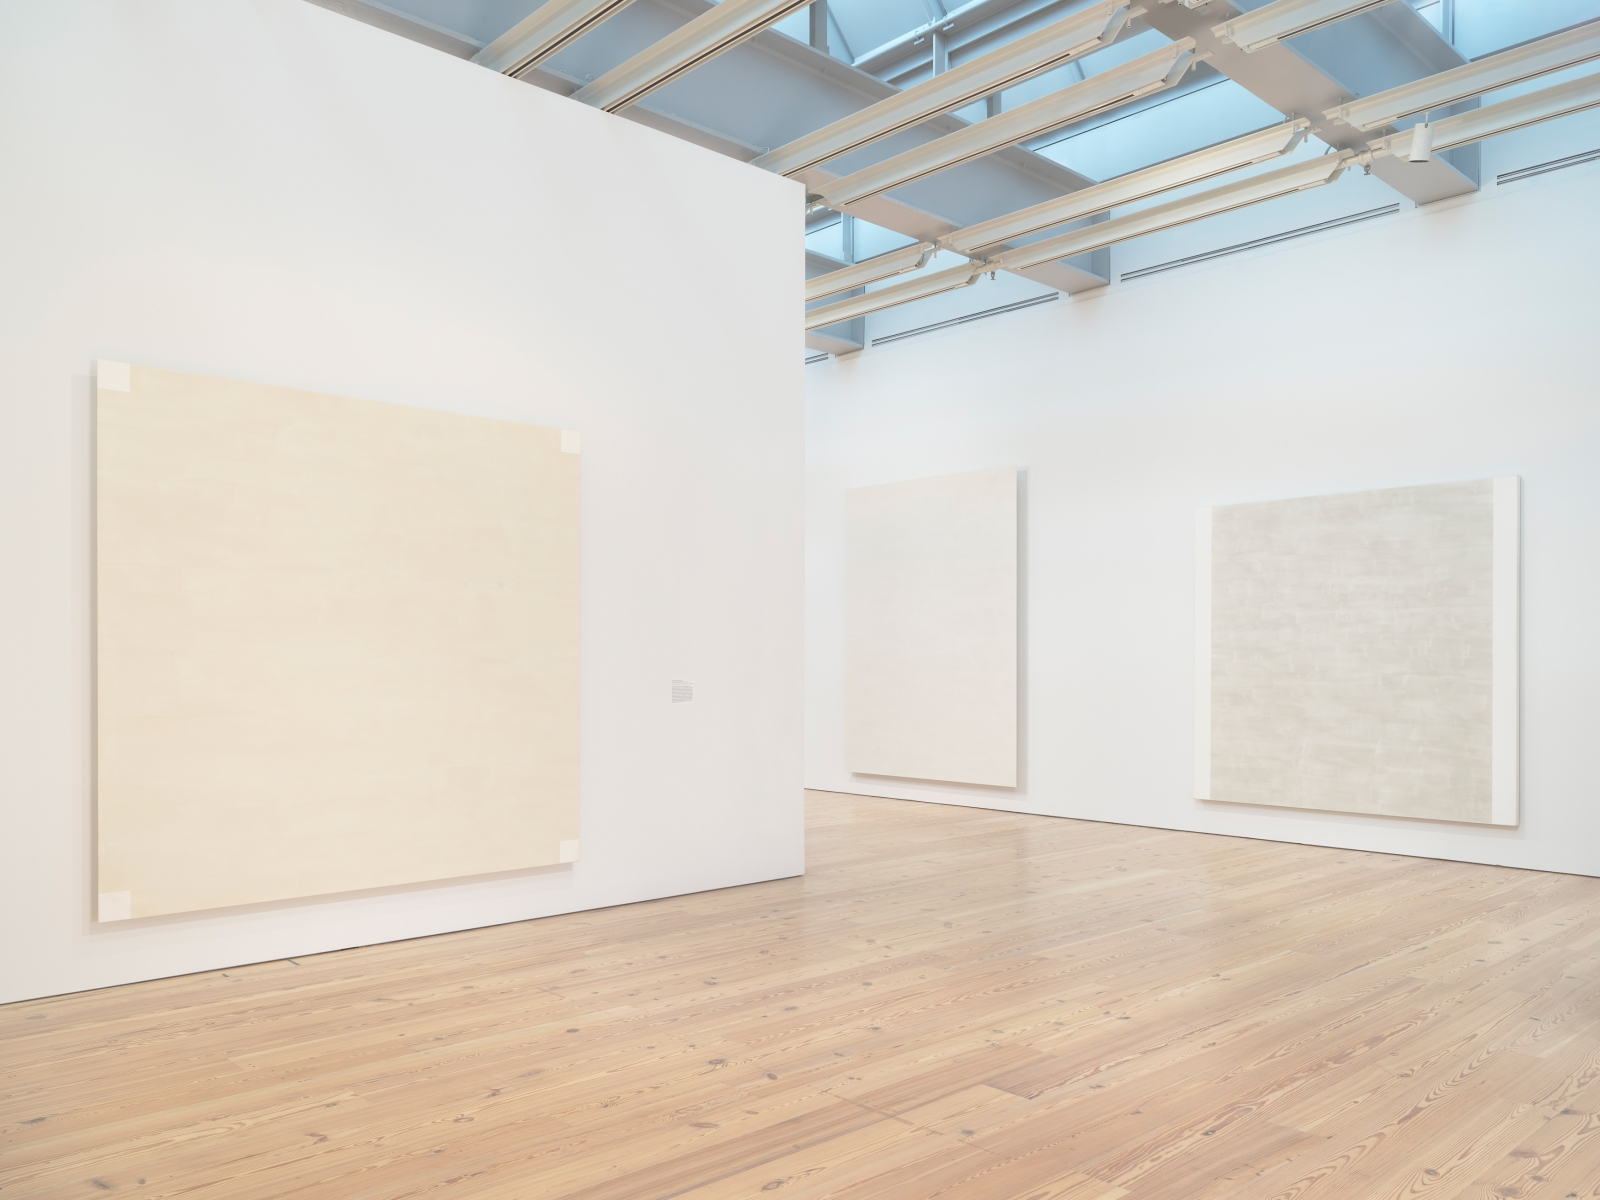 Installation photo of the 2018 exhibition Mary Corse: A Survey in Light at the Whitney Museum of American Art, New York, view 6